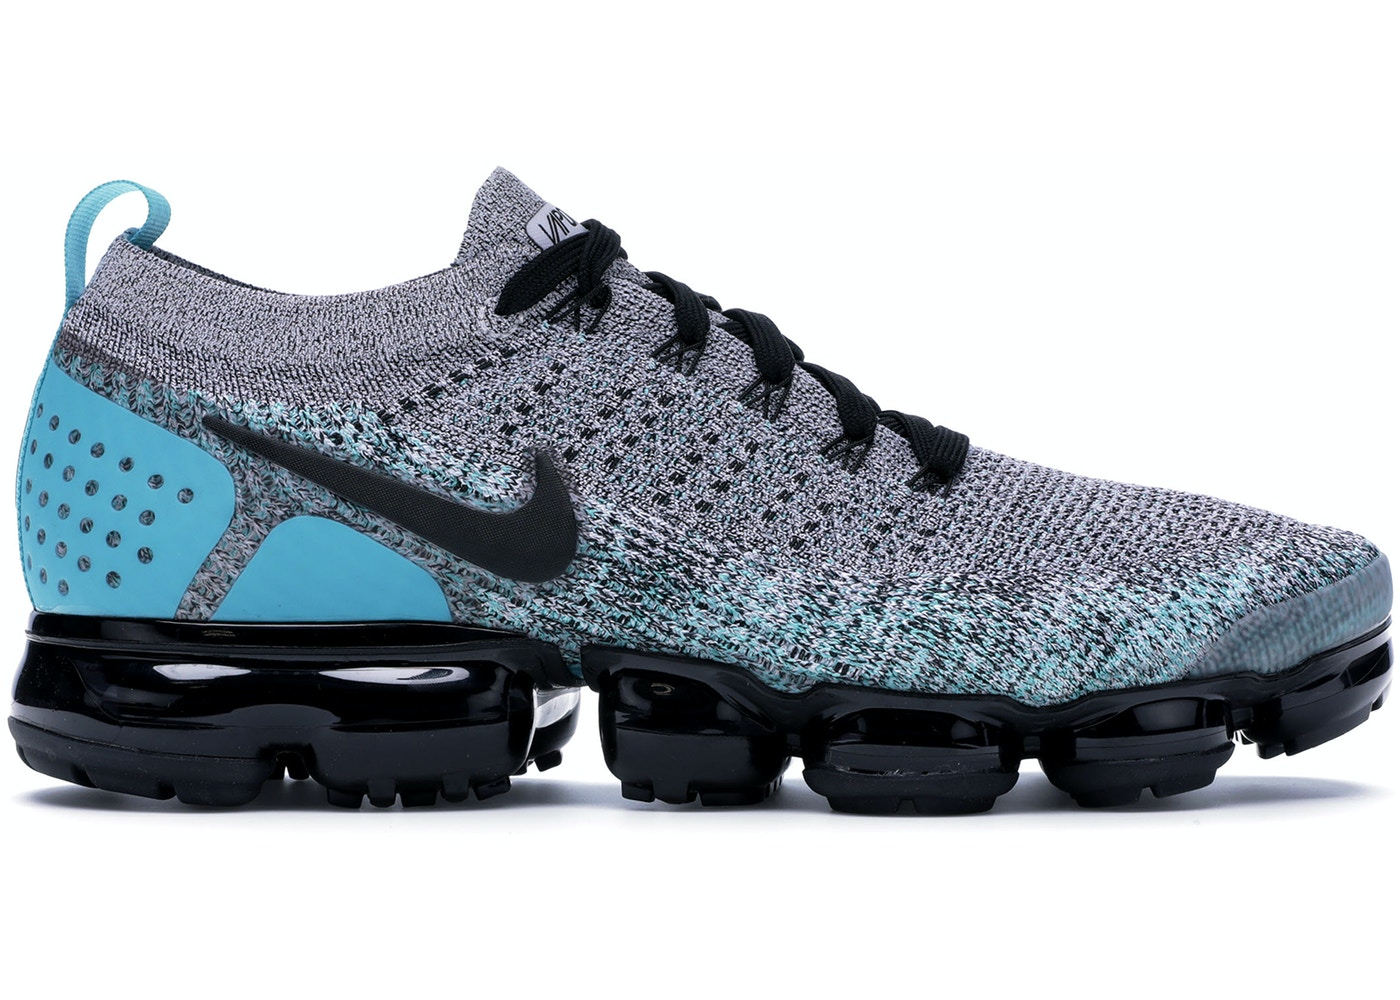 new product c8396 7ffcb Air VaporMax 2.0 Dusty Cactus Hyper Jade